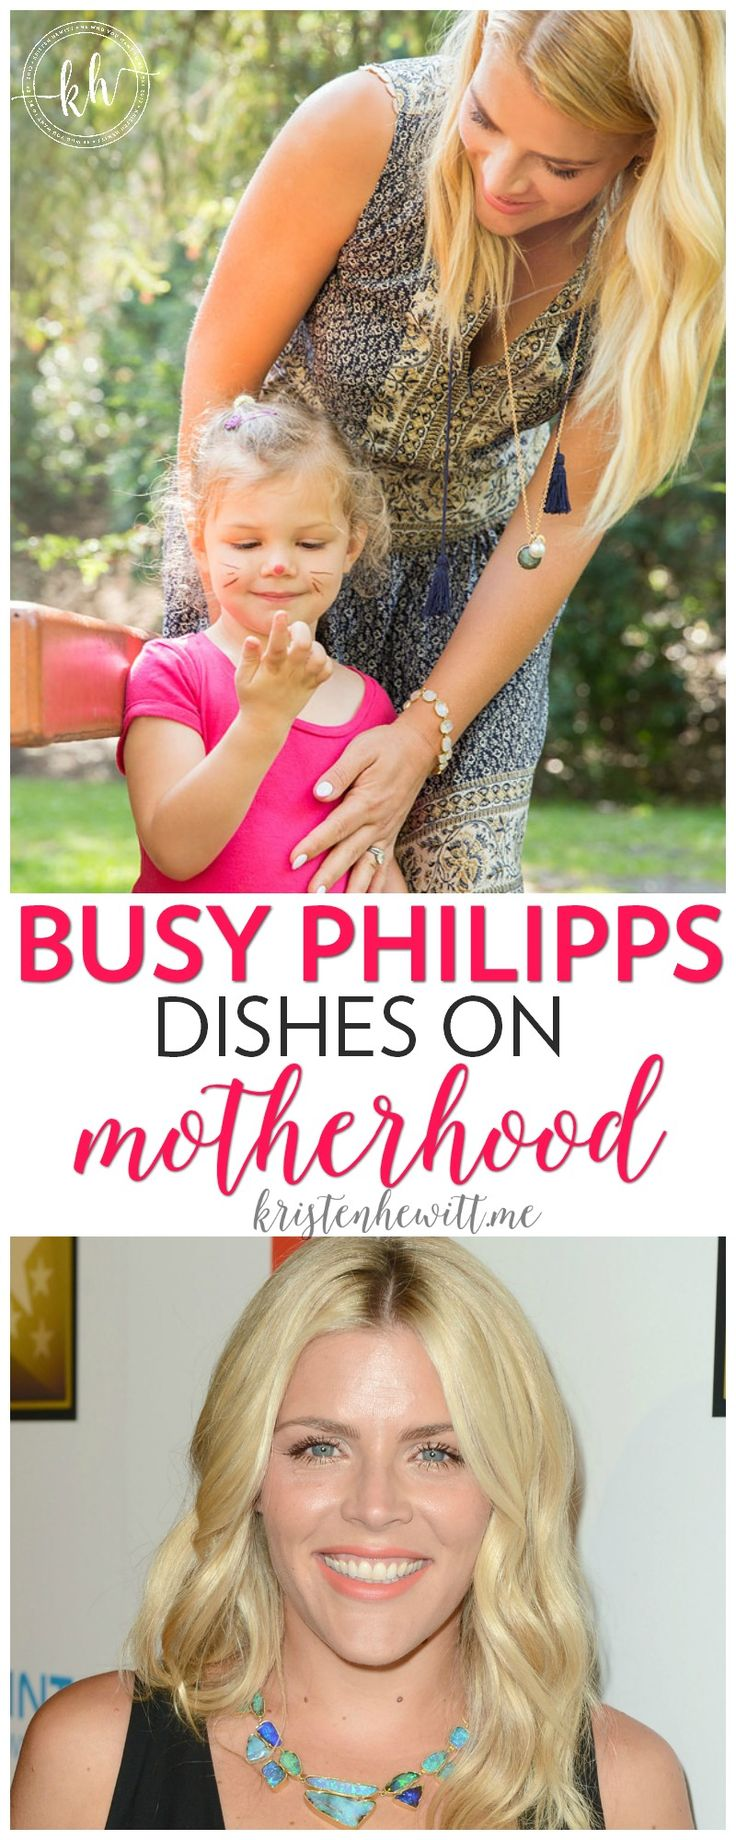 She's a movie star and a social media icon, but she's also a mom. Check out this interview with Busy Philips and learn more about real motherhood!